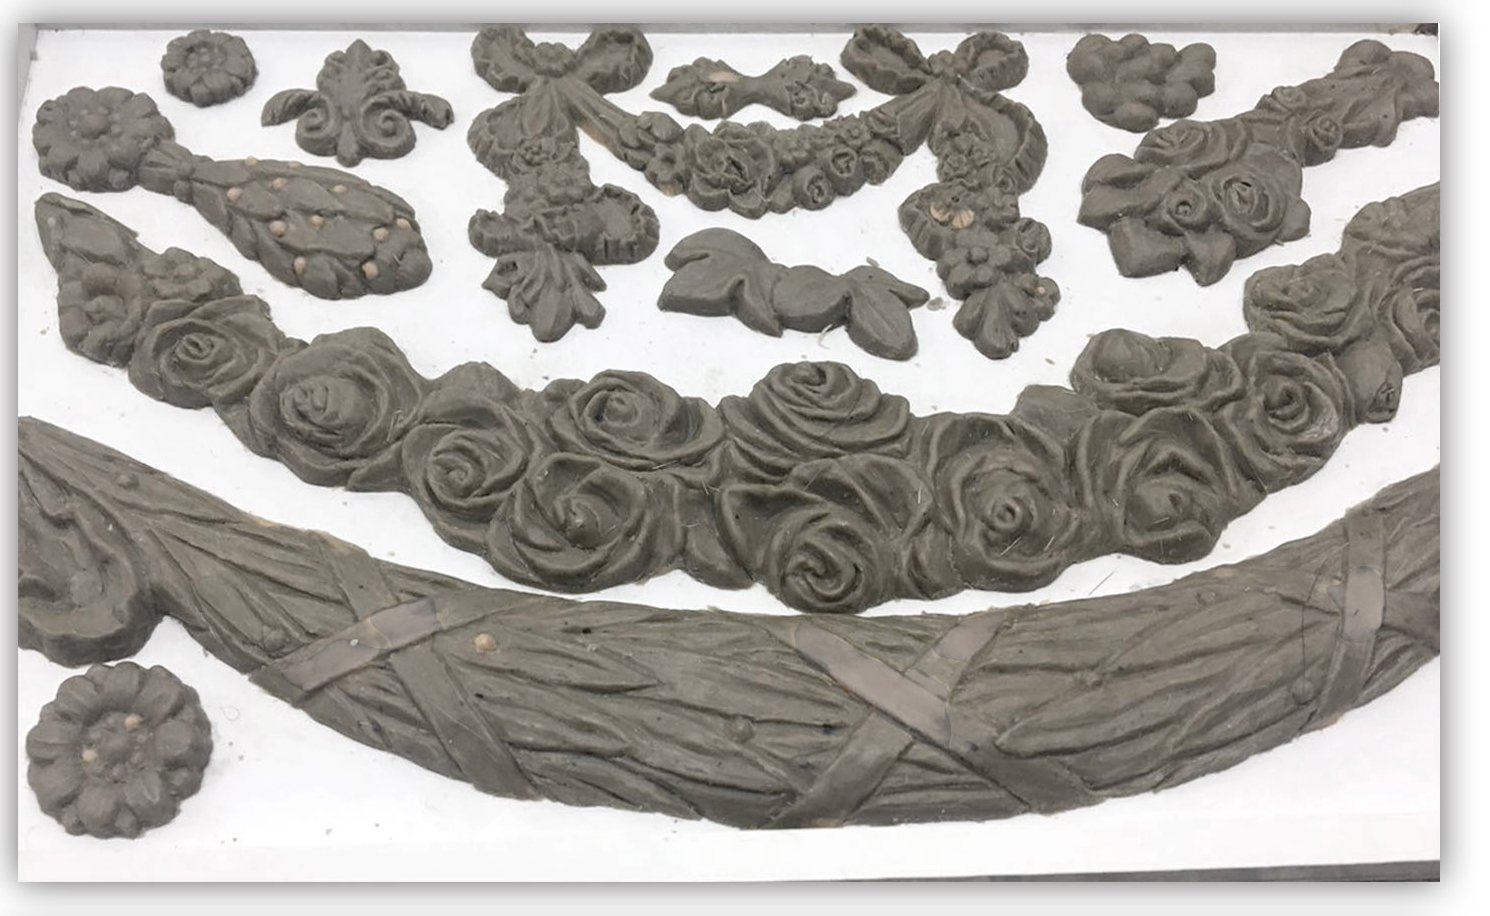 Swags 6x10 Decor Moulds